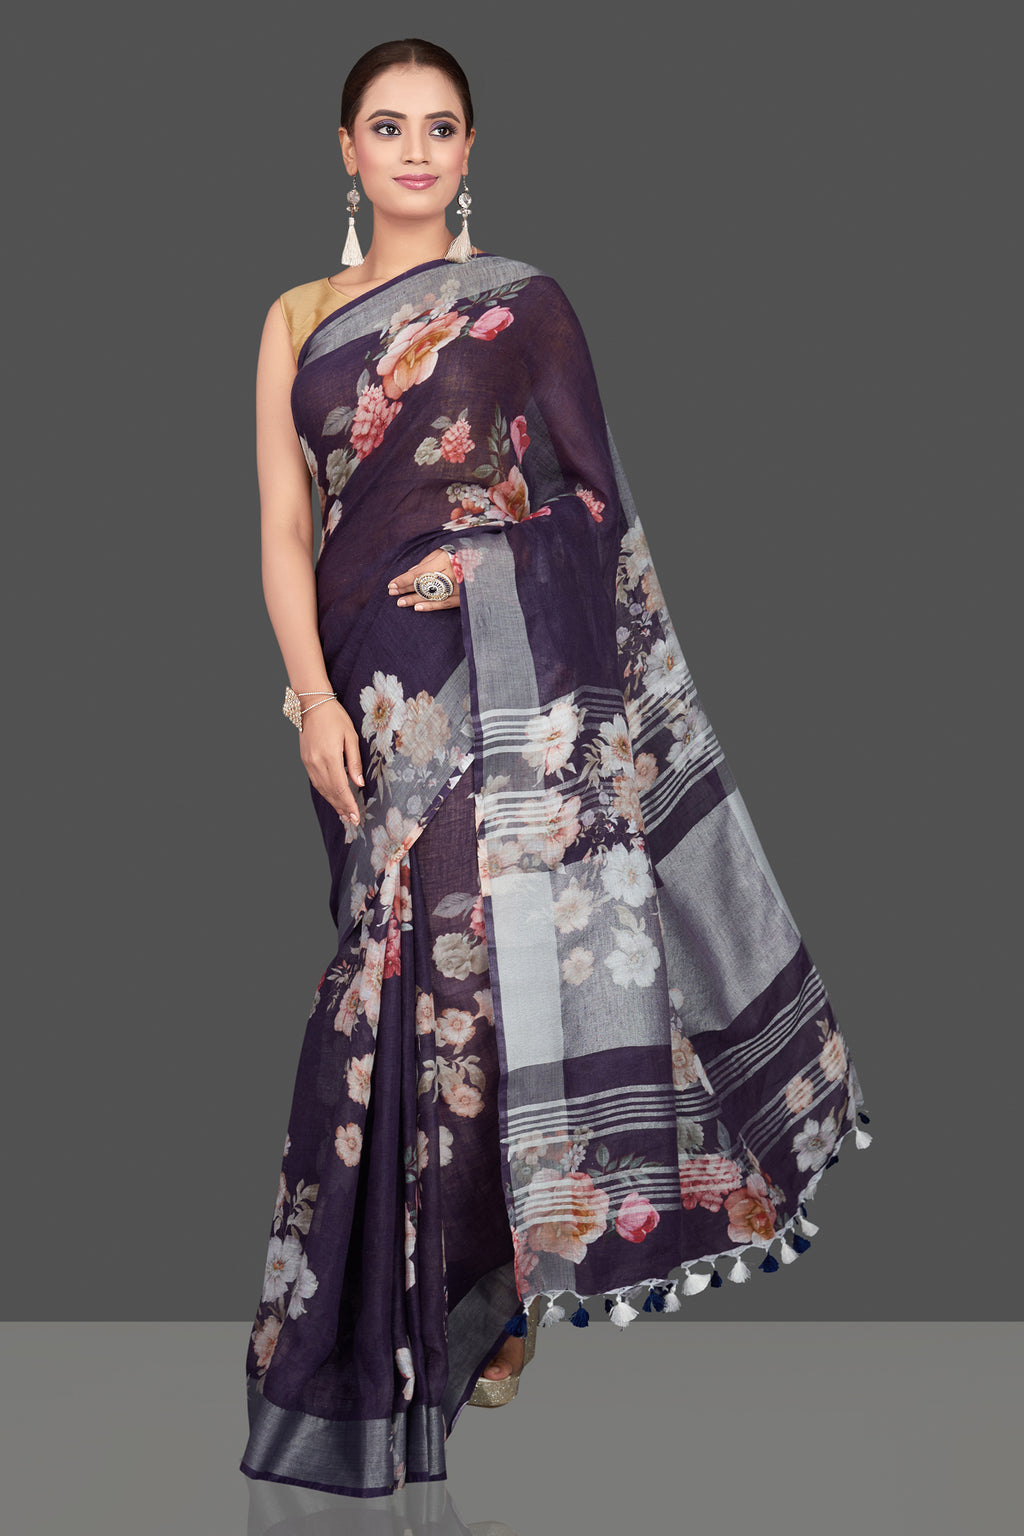 Buy stunning purple floral linen sari online in USA with silver border. Look glamorous at parties and weddings in stunning designer sarees, embroidered sarees, fancy sarees, Bollywood sarees, linen sarees from Pure Elegance Indian saree store in USA.-full view